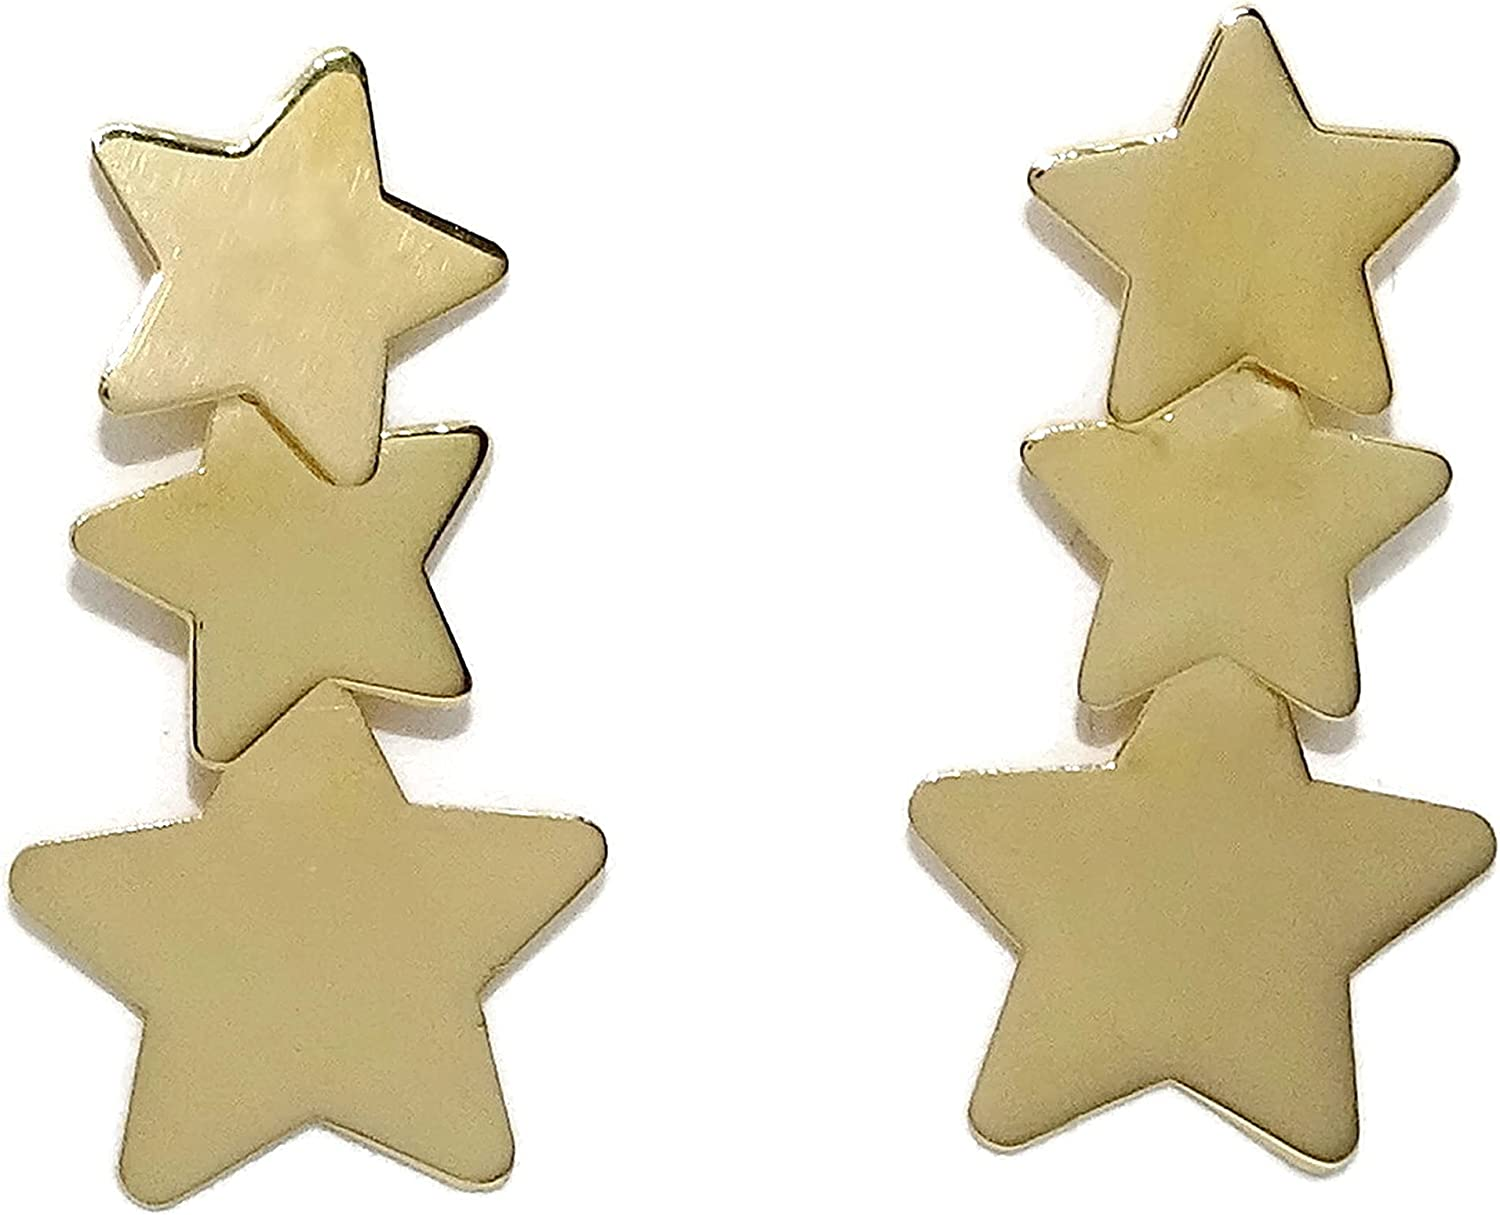 Chicago Mall 18K Yellow Gold Max 57% OFF 3 Stars Earrings Re Shiny Stud Drop